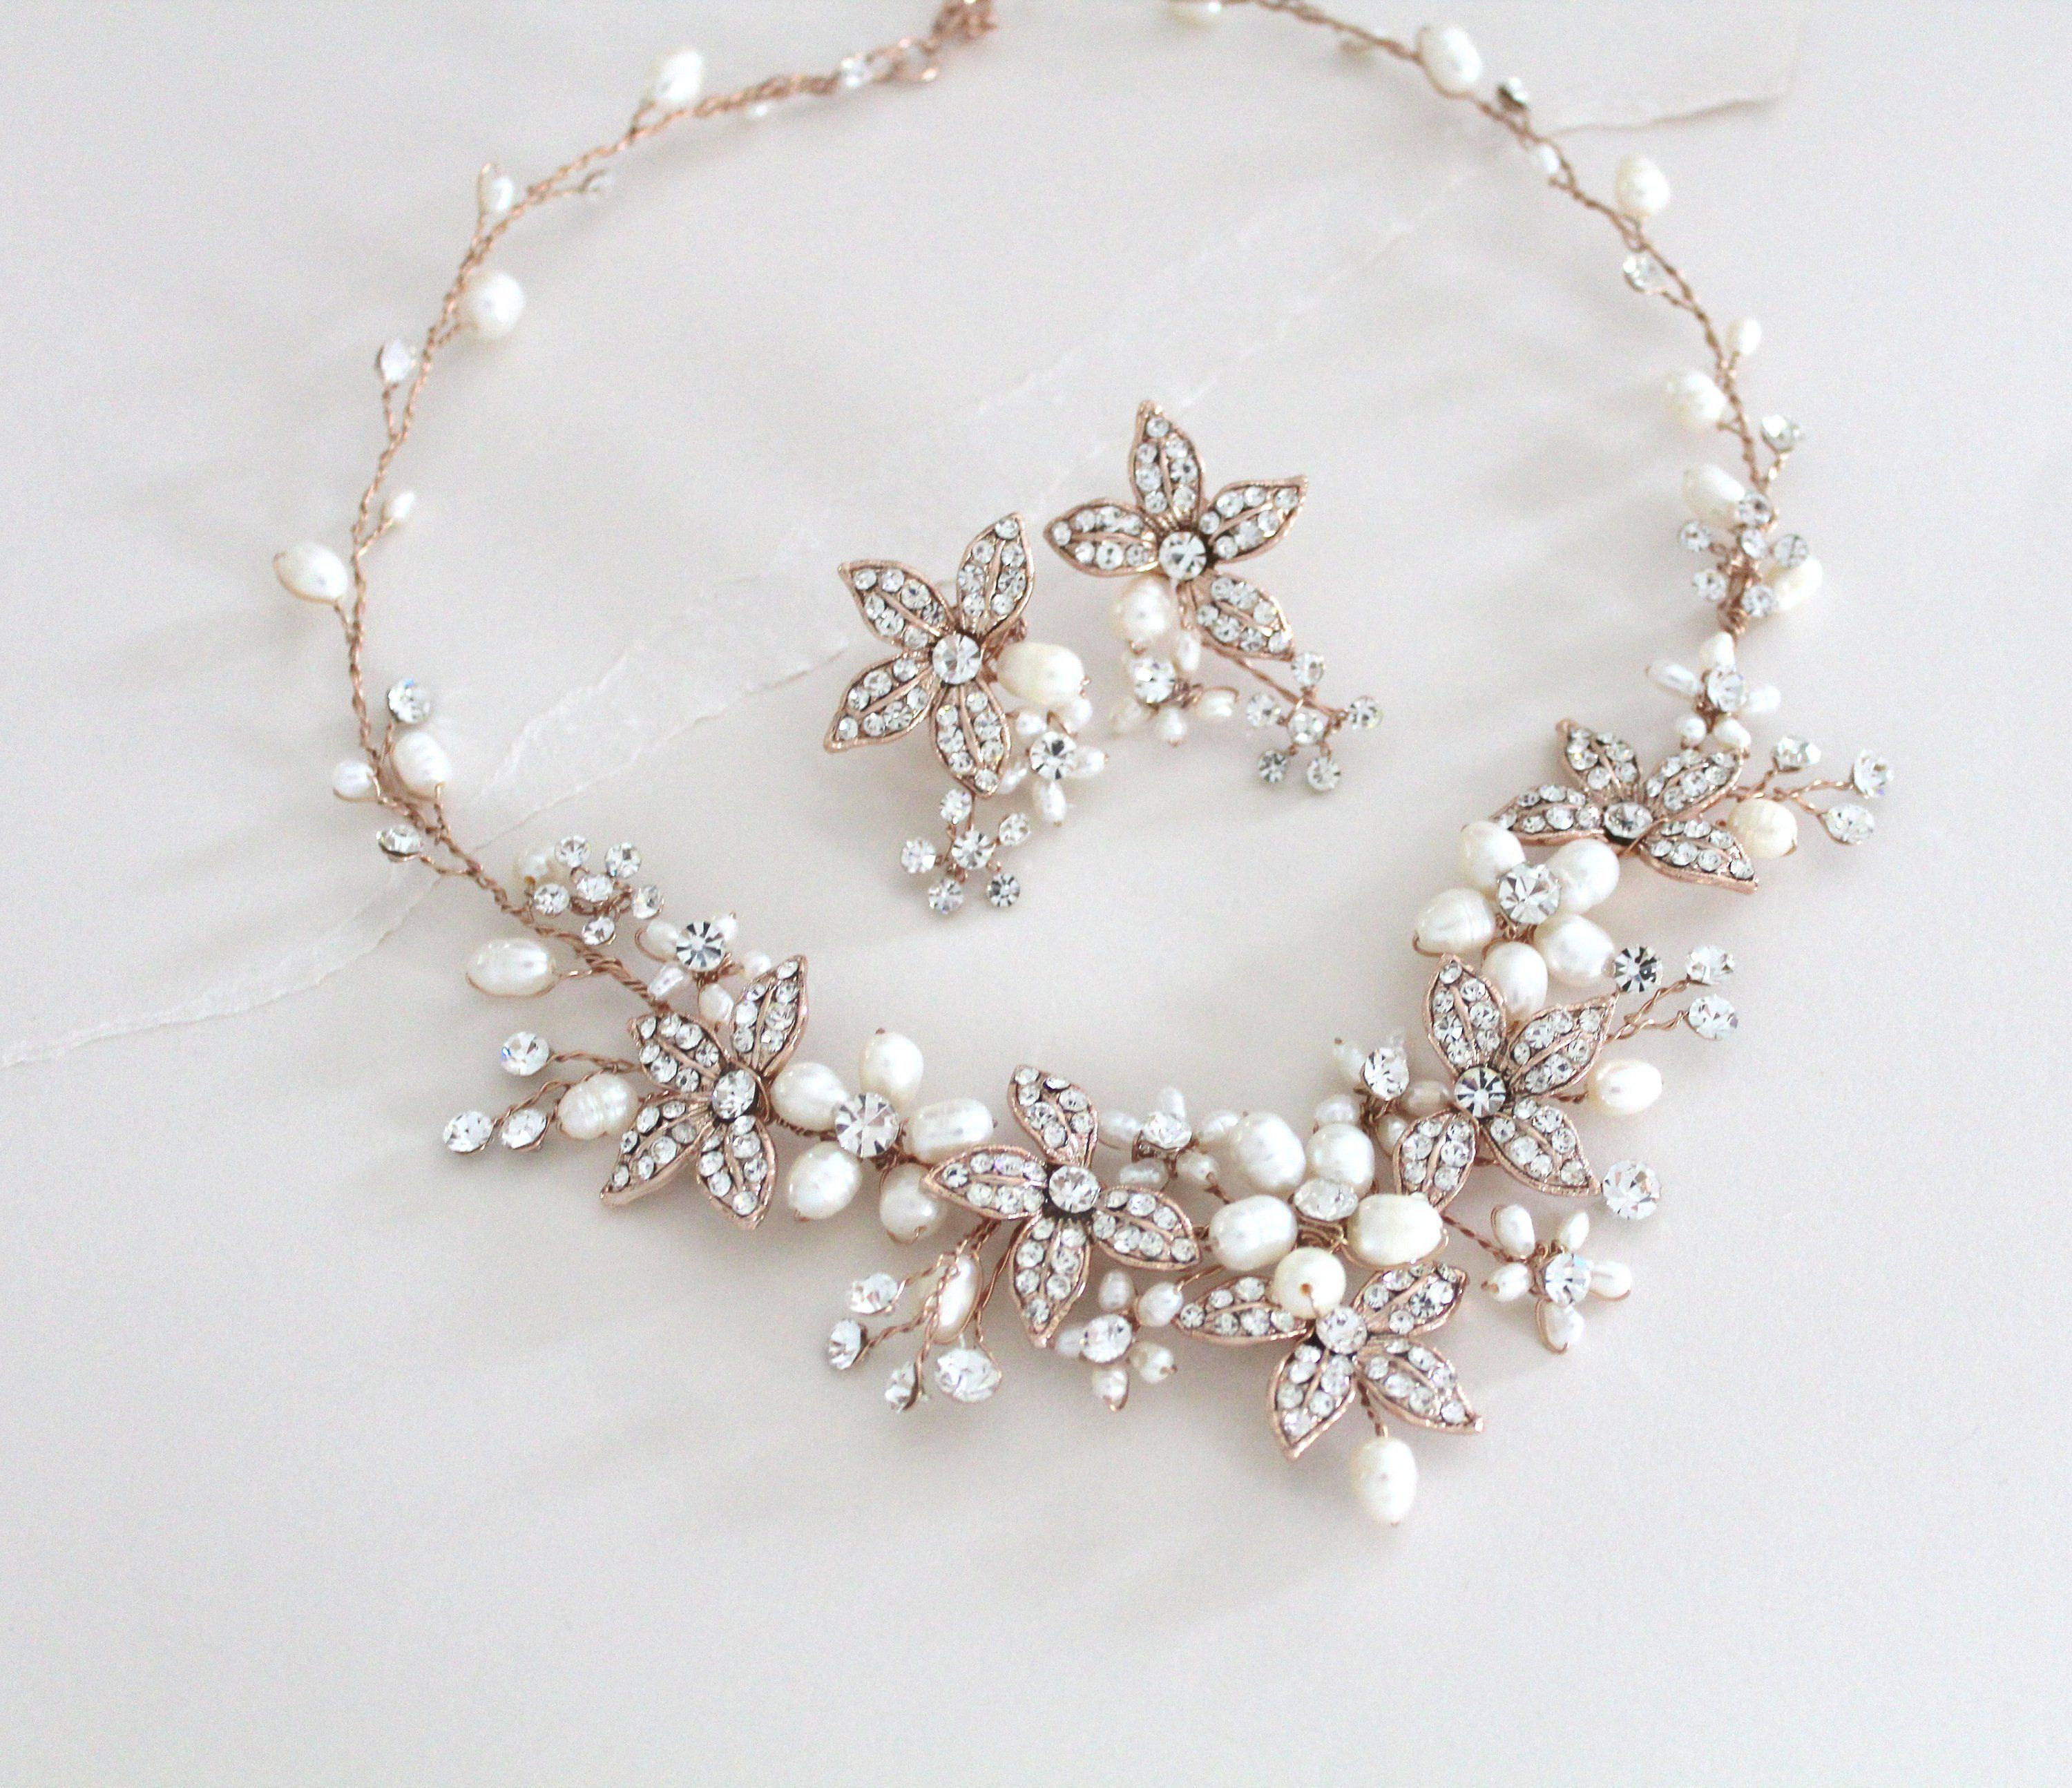 Jewelry Necklace and Earrings-Flower 21